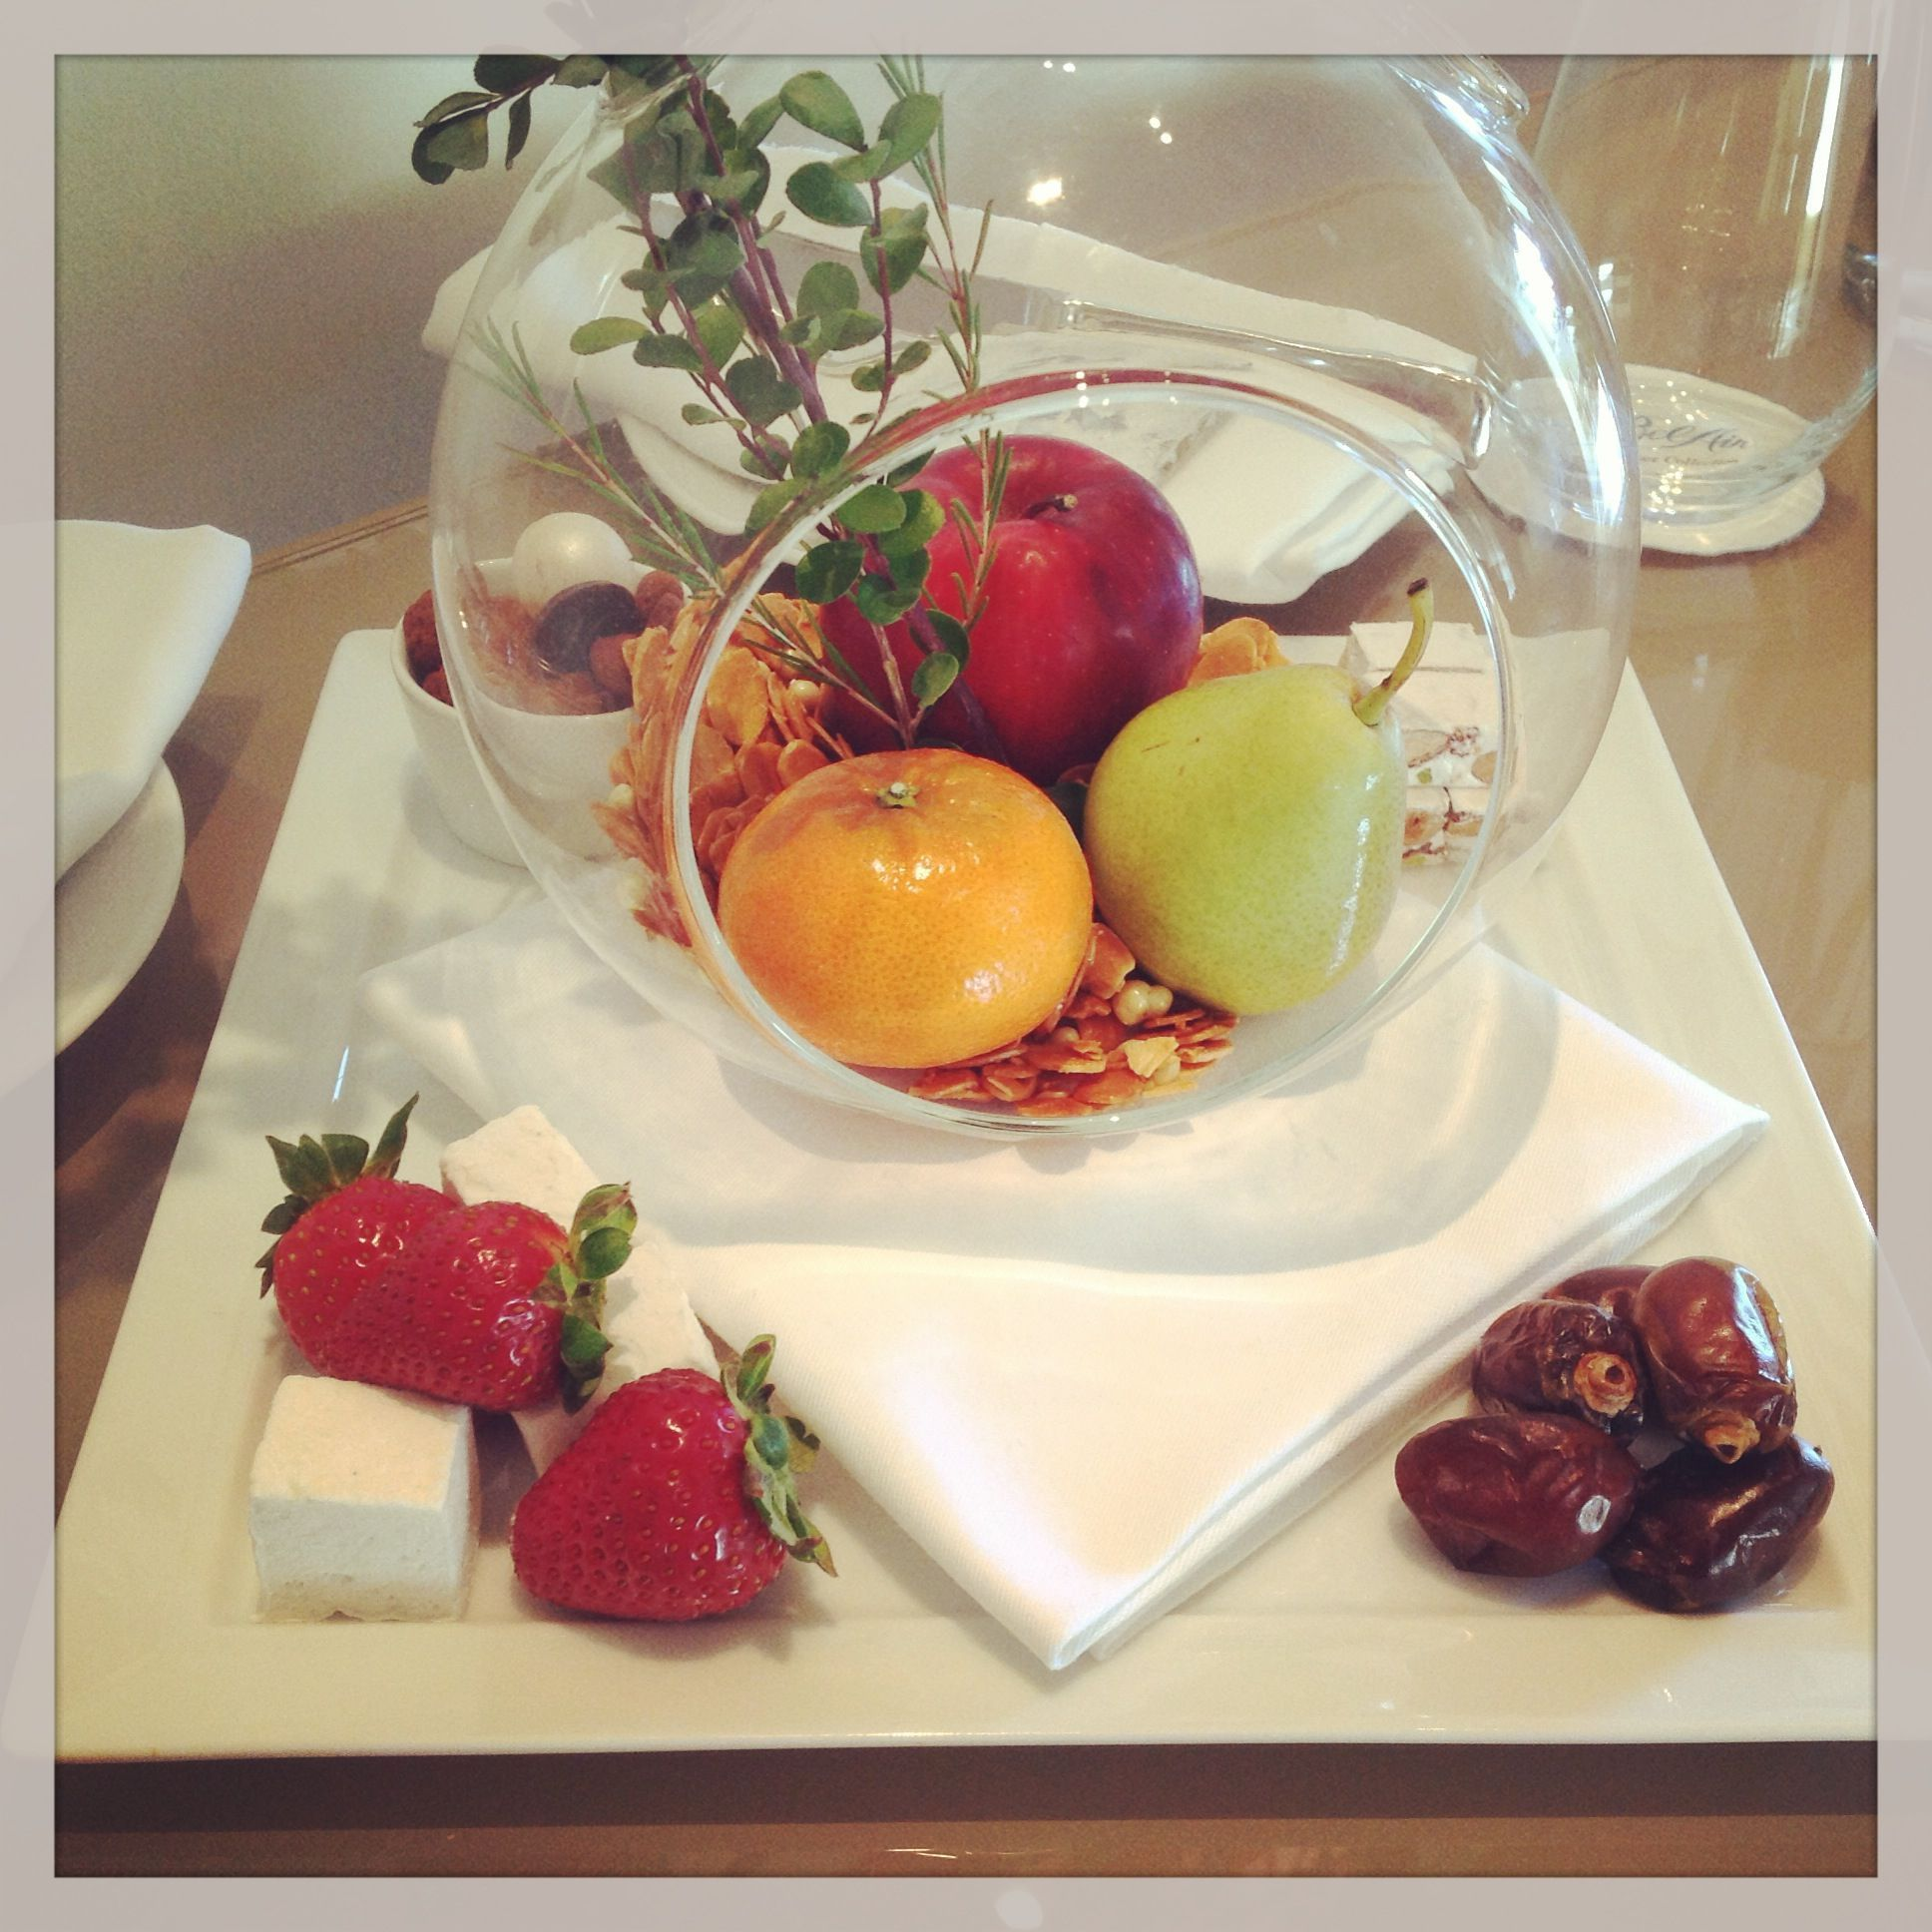 amenities at Hotel BelAir. Fresh fruit, dates and